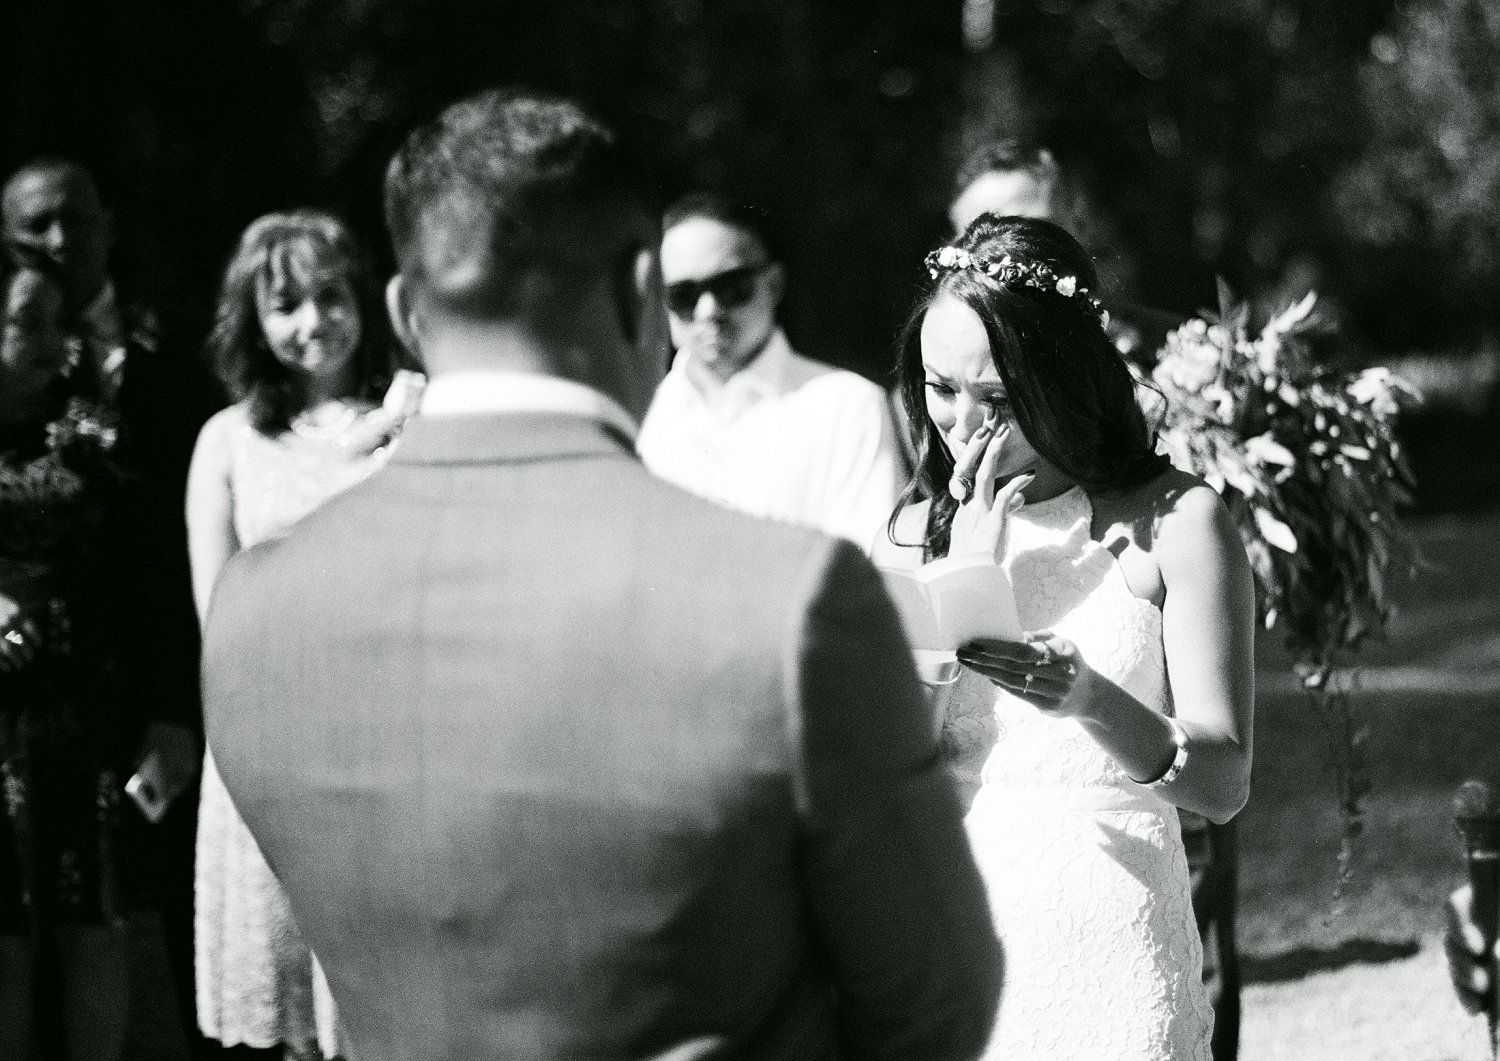 Michelle and Brett's elopement ceremony was so emotional. It's been a long road for them and they're finally married. I love this image of Michelle crying happy tears while giving her vows.